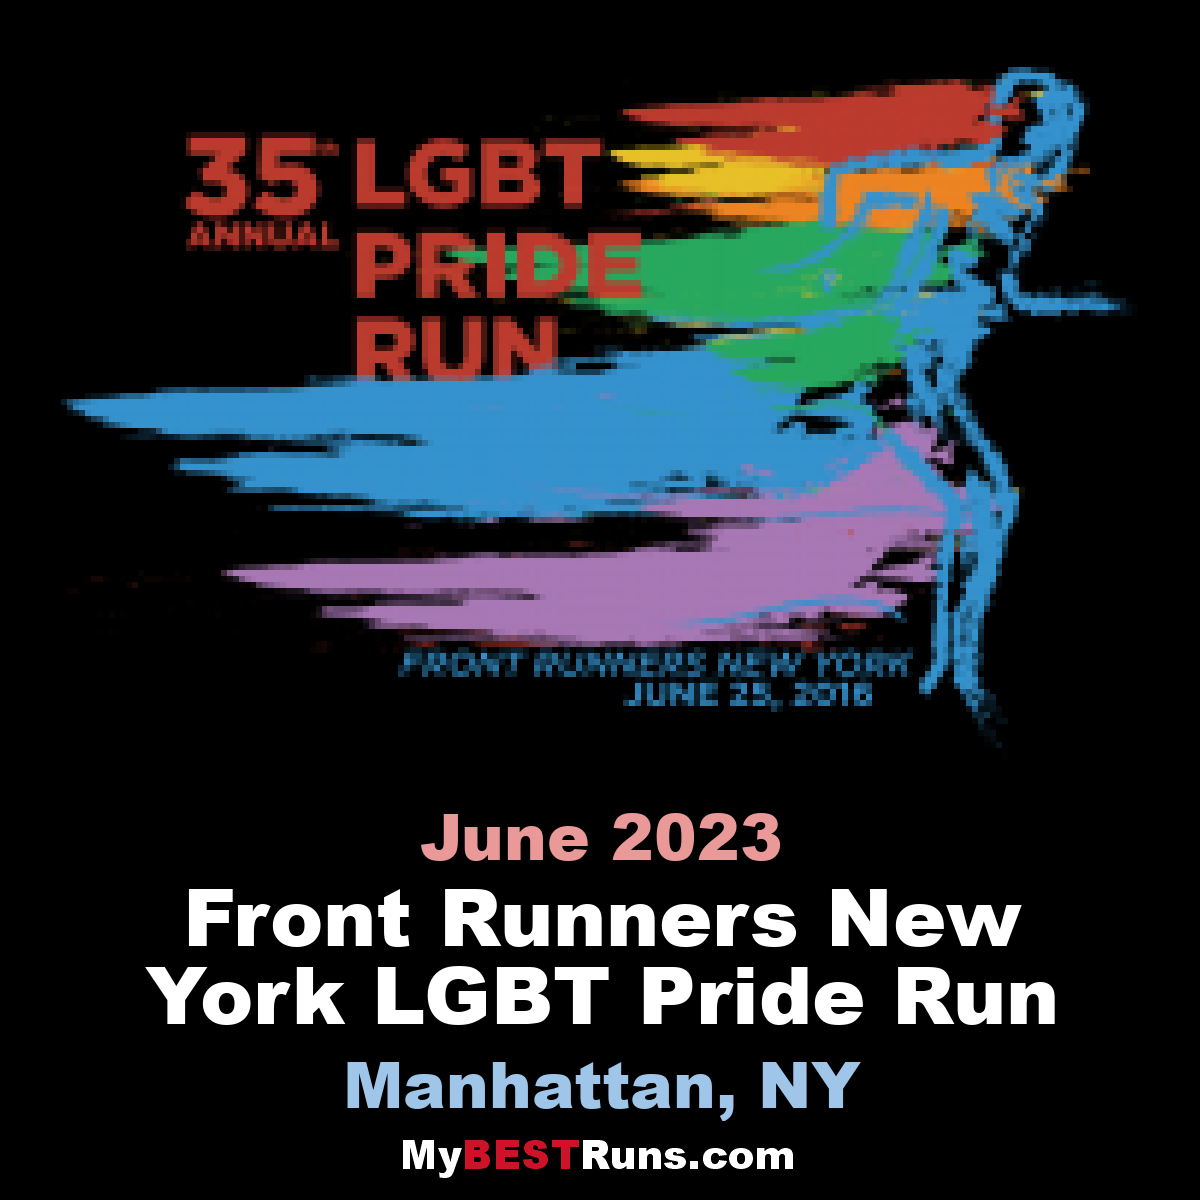 Front Runners New York LGBT Pride Run